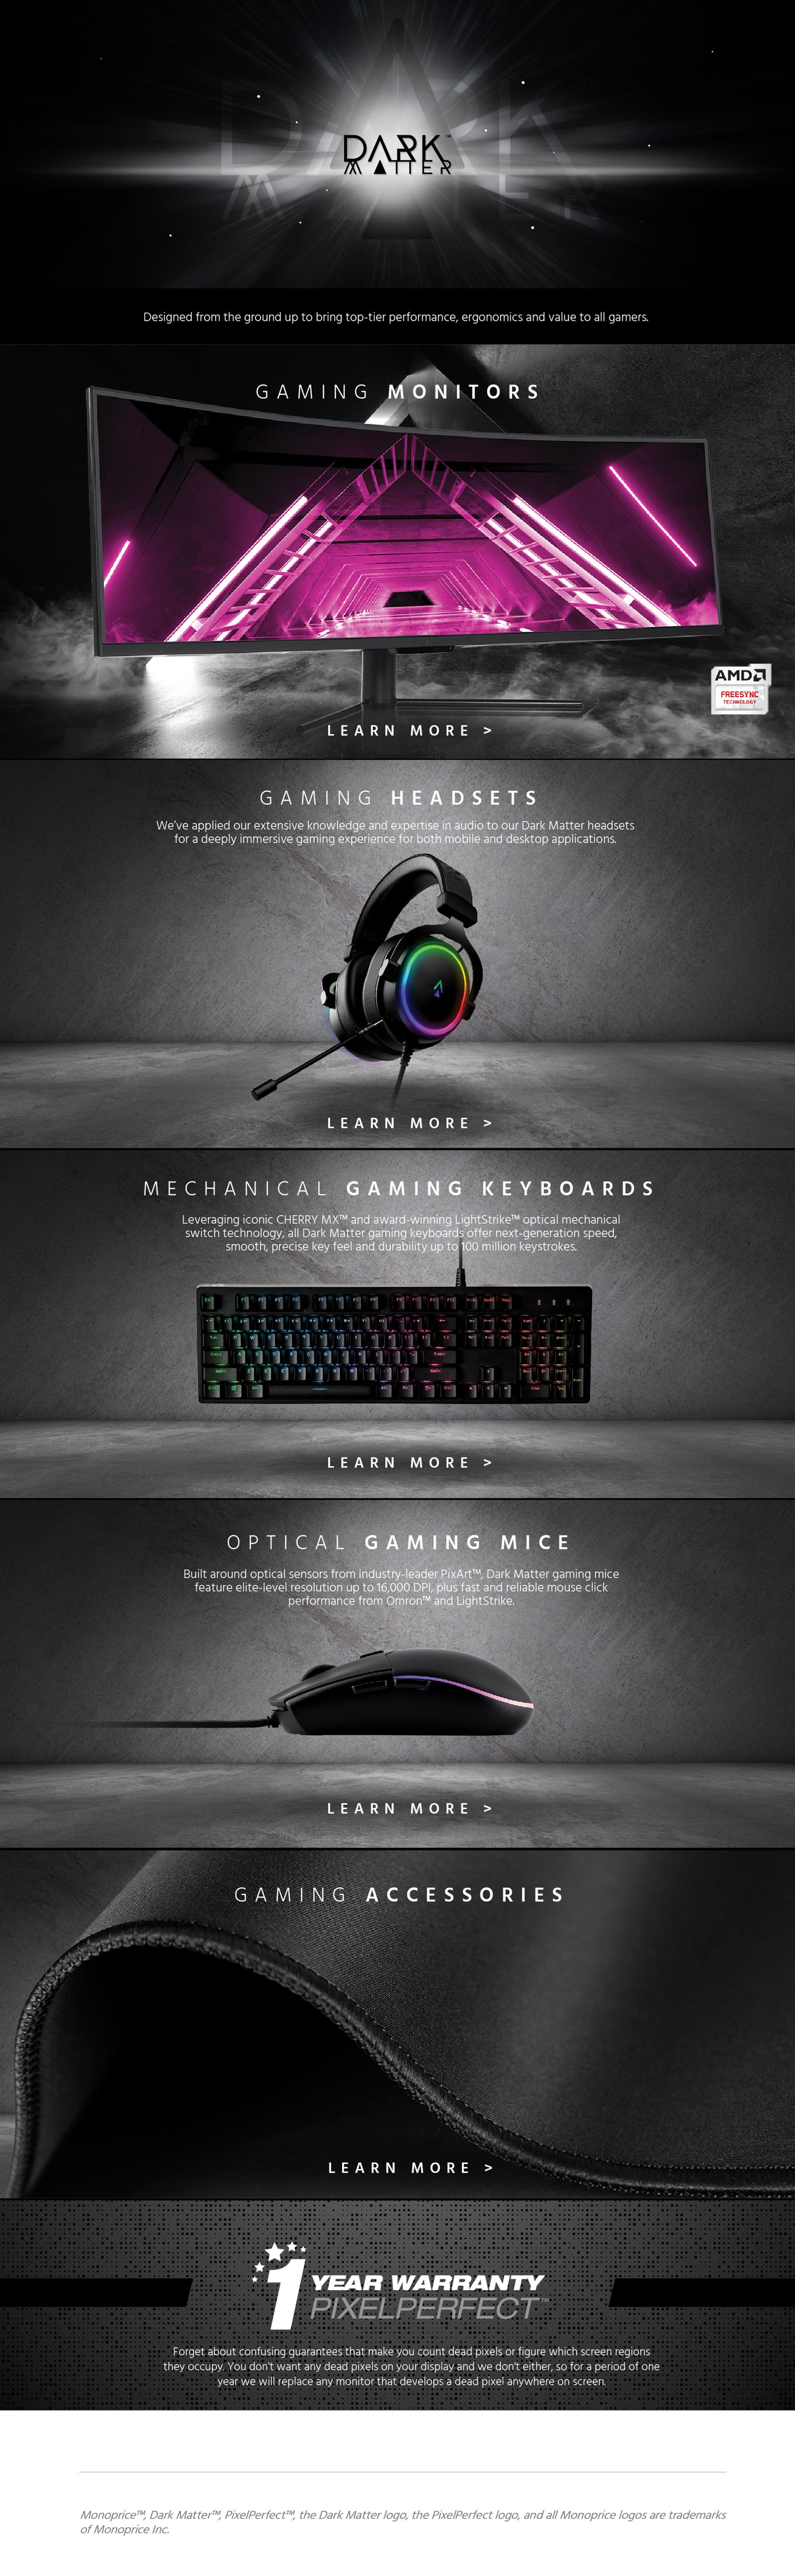 Dark Matter - Designed from the gorun up to brin top-tier performance, ergonomics and value to all gamers. Gaming Monitors - Learn More. Gaming Headsets - We've applied our extensive knowledge and expertise in audio to our Dark Matter headsets for a deeply immersive gaming experience for both mobile and desktop applications. Learn More. Mechanical Gaming Keyboards - Leveraging iconic Cherry MX and award-winning LightStrike optical mechanical switch technology, all Dark Matter gaming keyboards offer next-generation speed, smooth, precise key feel and durability up to 100 million keystrokes. Learn More. Optical Gaming Mice - Built around optical sensors from industry-leader PixArt, Dark Matter gaming mice feature elite-level resolution up to 16,000 DPI, plus fast and reliable mouse click performance from Omron and LightStrike. Learn More. Gaming Accessories - Learn More. 1 Year Warranty PixelPerfect - Forget about confusing guarantees that make you count dead pixels or figure which screen regions they occupy.  You don't want any dead pixels on your display and we don't either, so for a period of one year we will replace any monitor that develops a dead pixel anywhere on the screen. Monoprice, Dark Matter, PixelPerfect, the Dark Matter logo, the PixelPerfect logo, and all Monoprice logos are trademarks of Monoprice Inc.